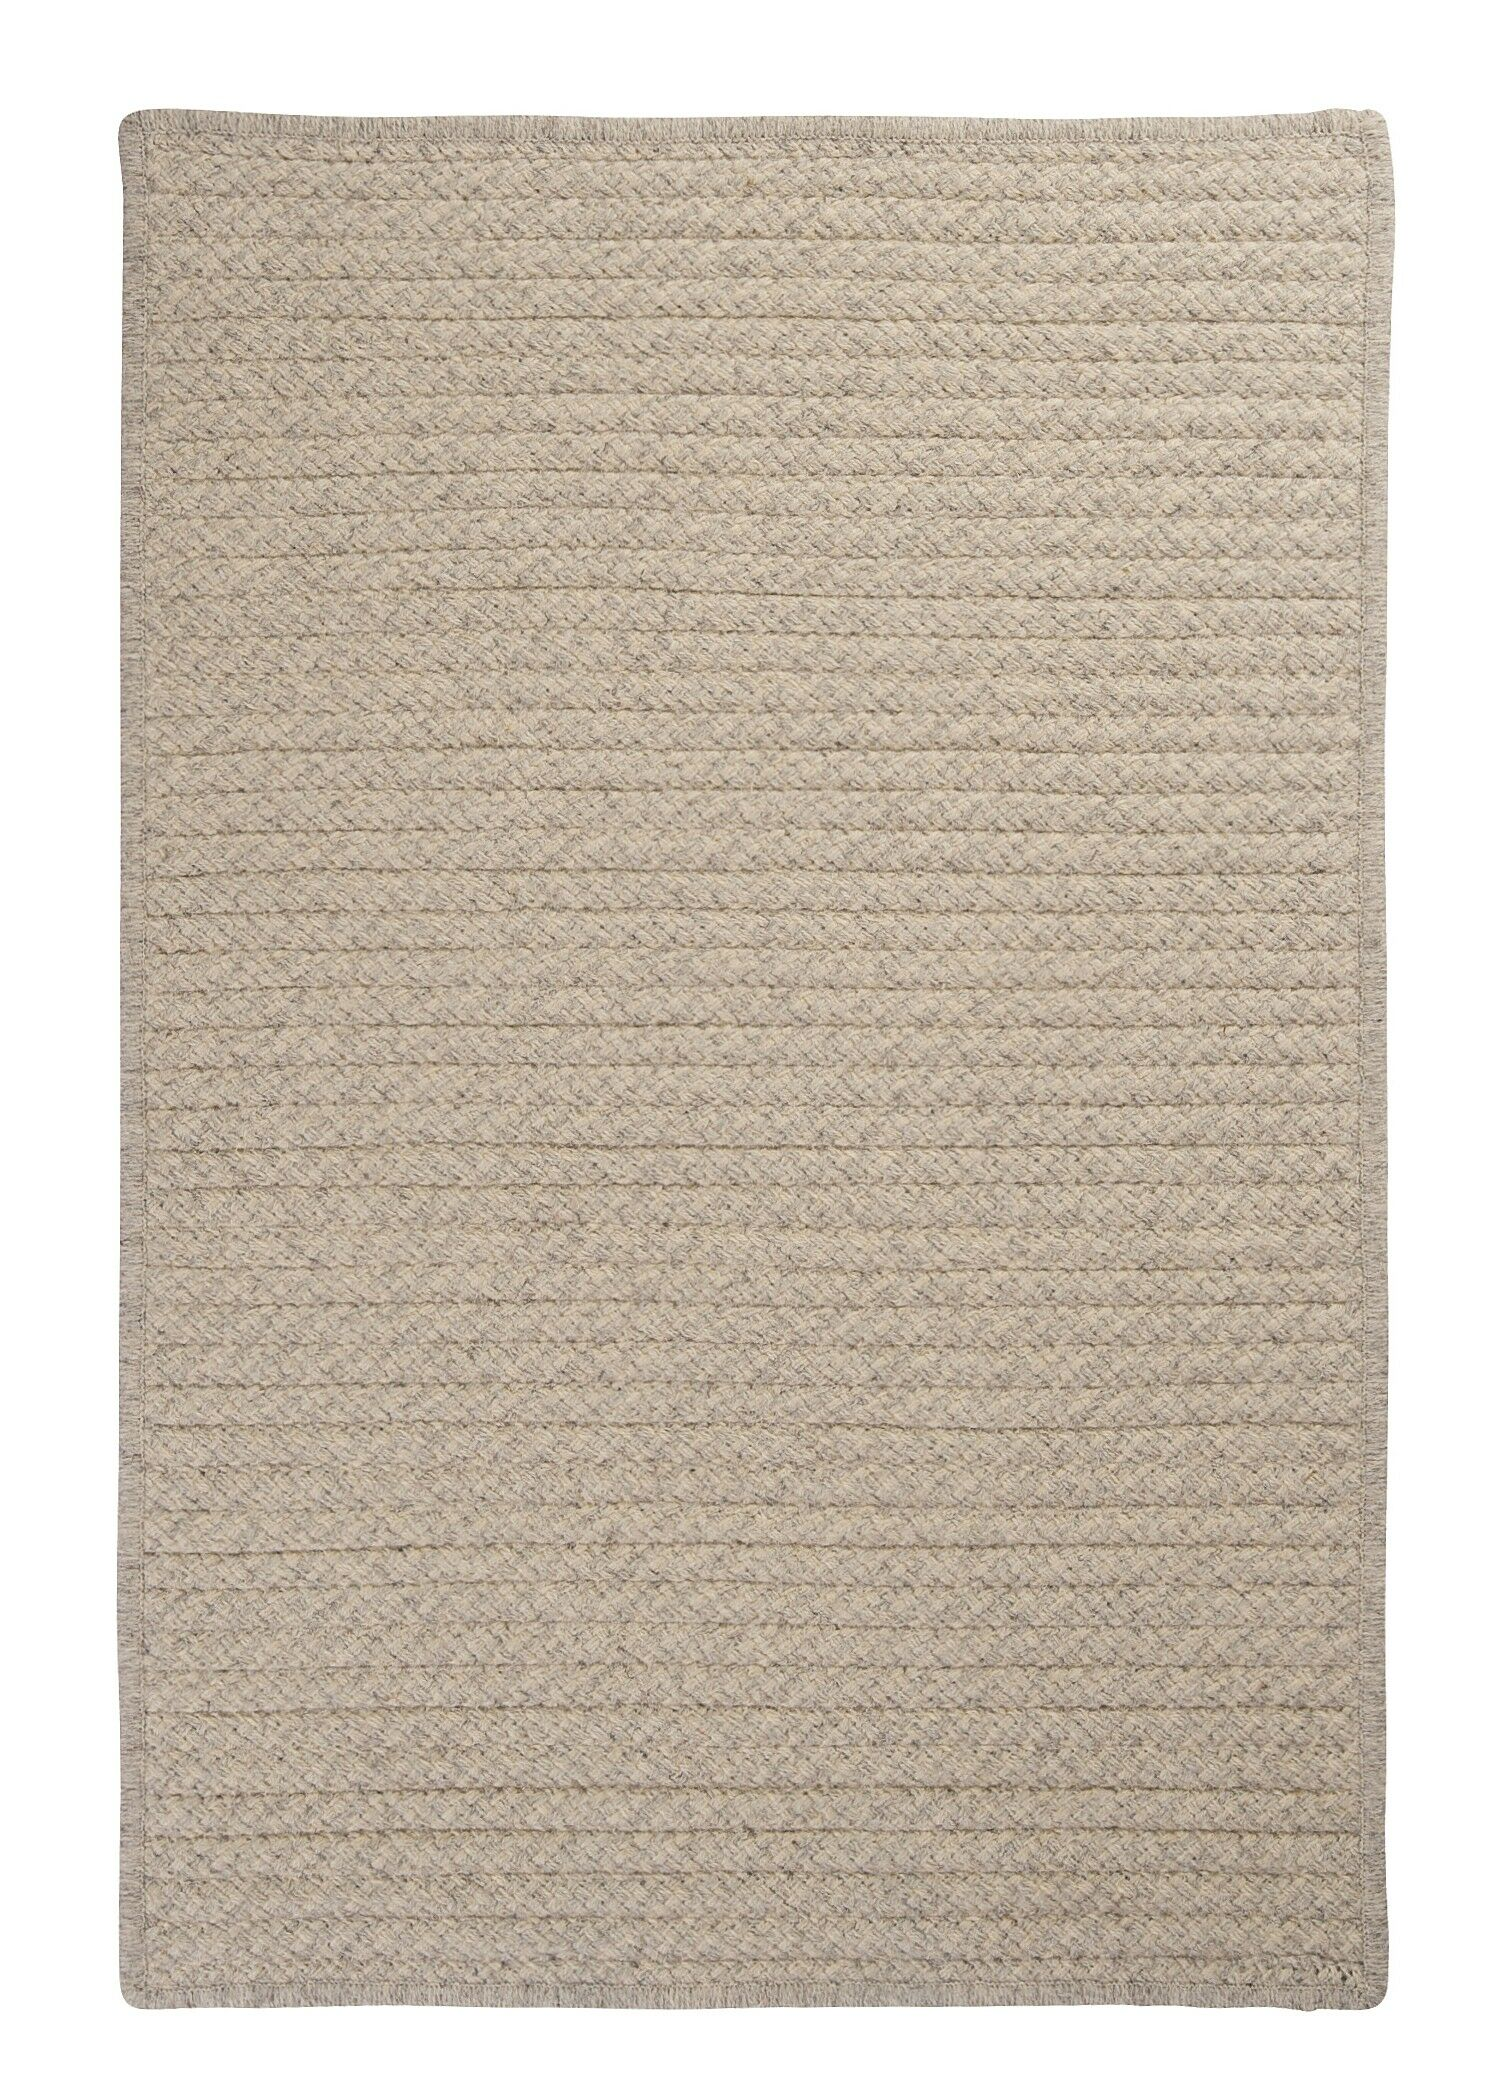 Natural Wool Houndstooth Braided Cream Area Rug Rug Size: Square 12'